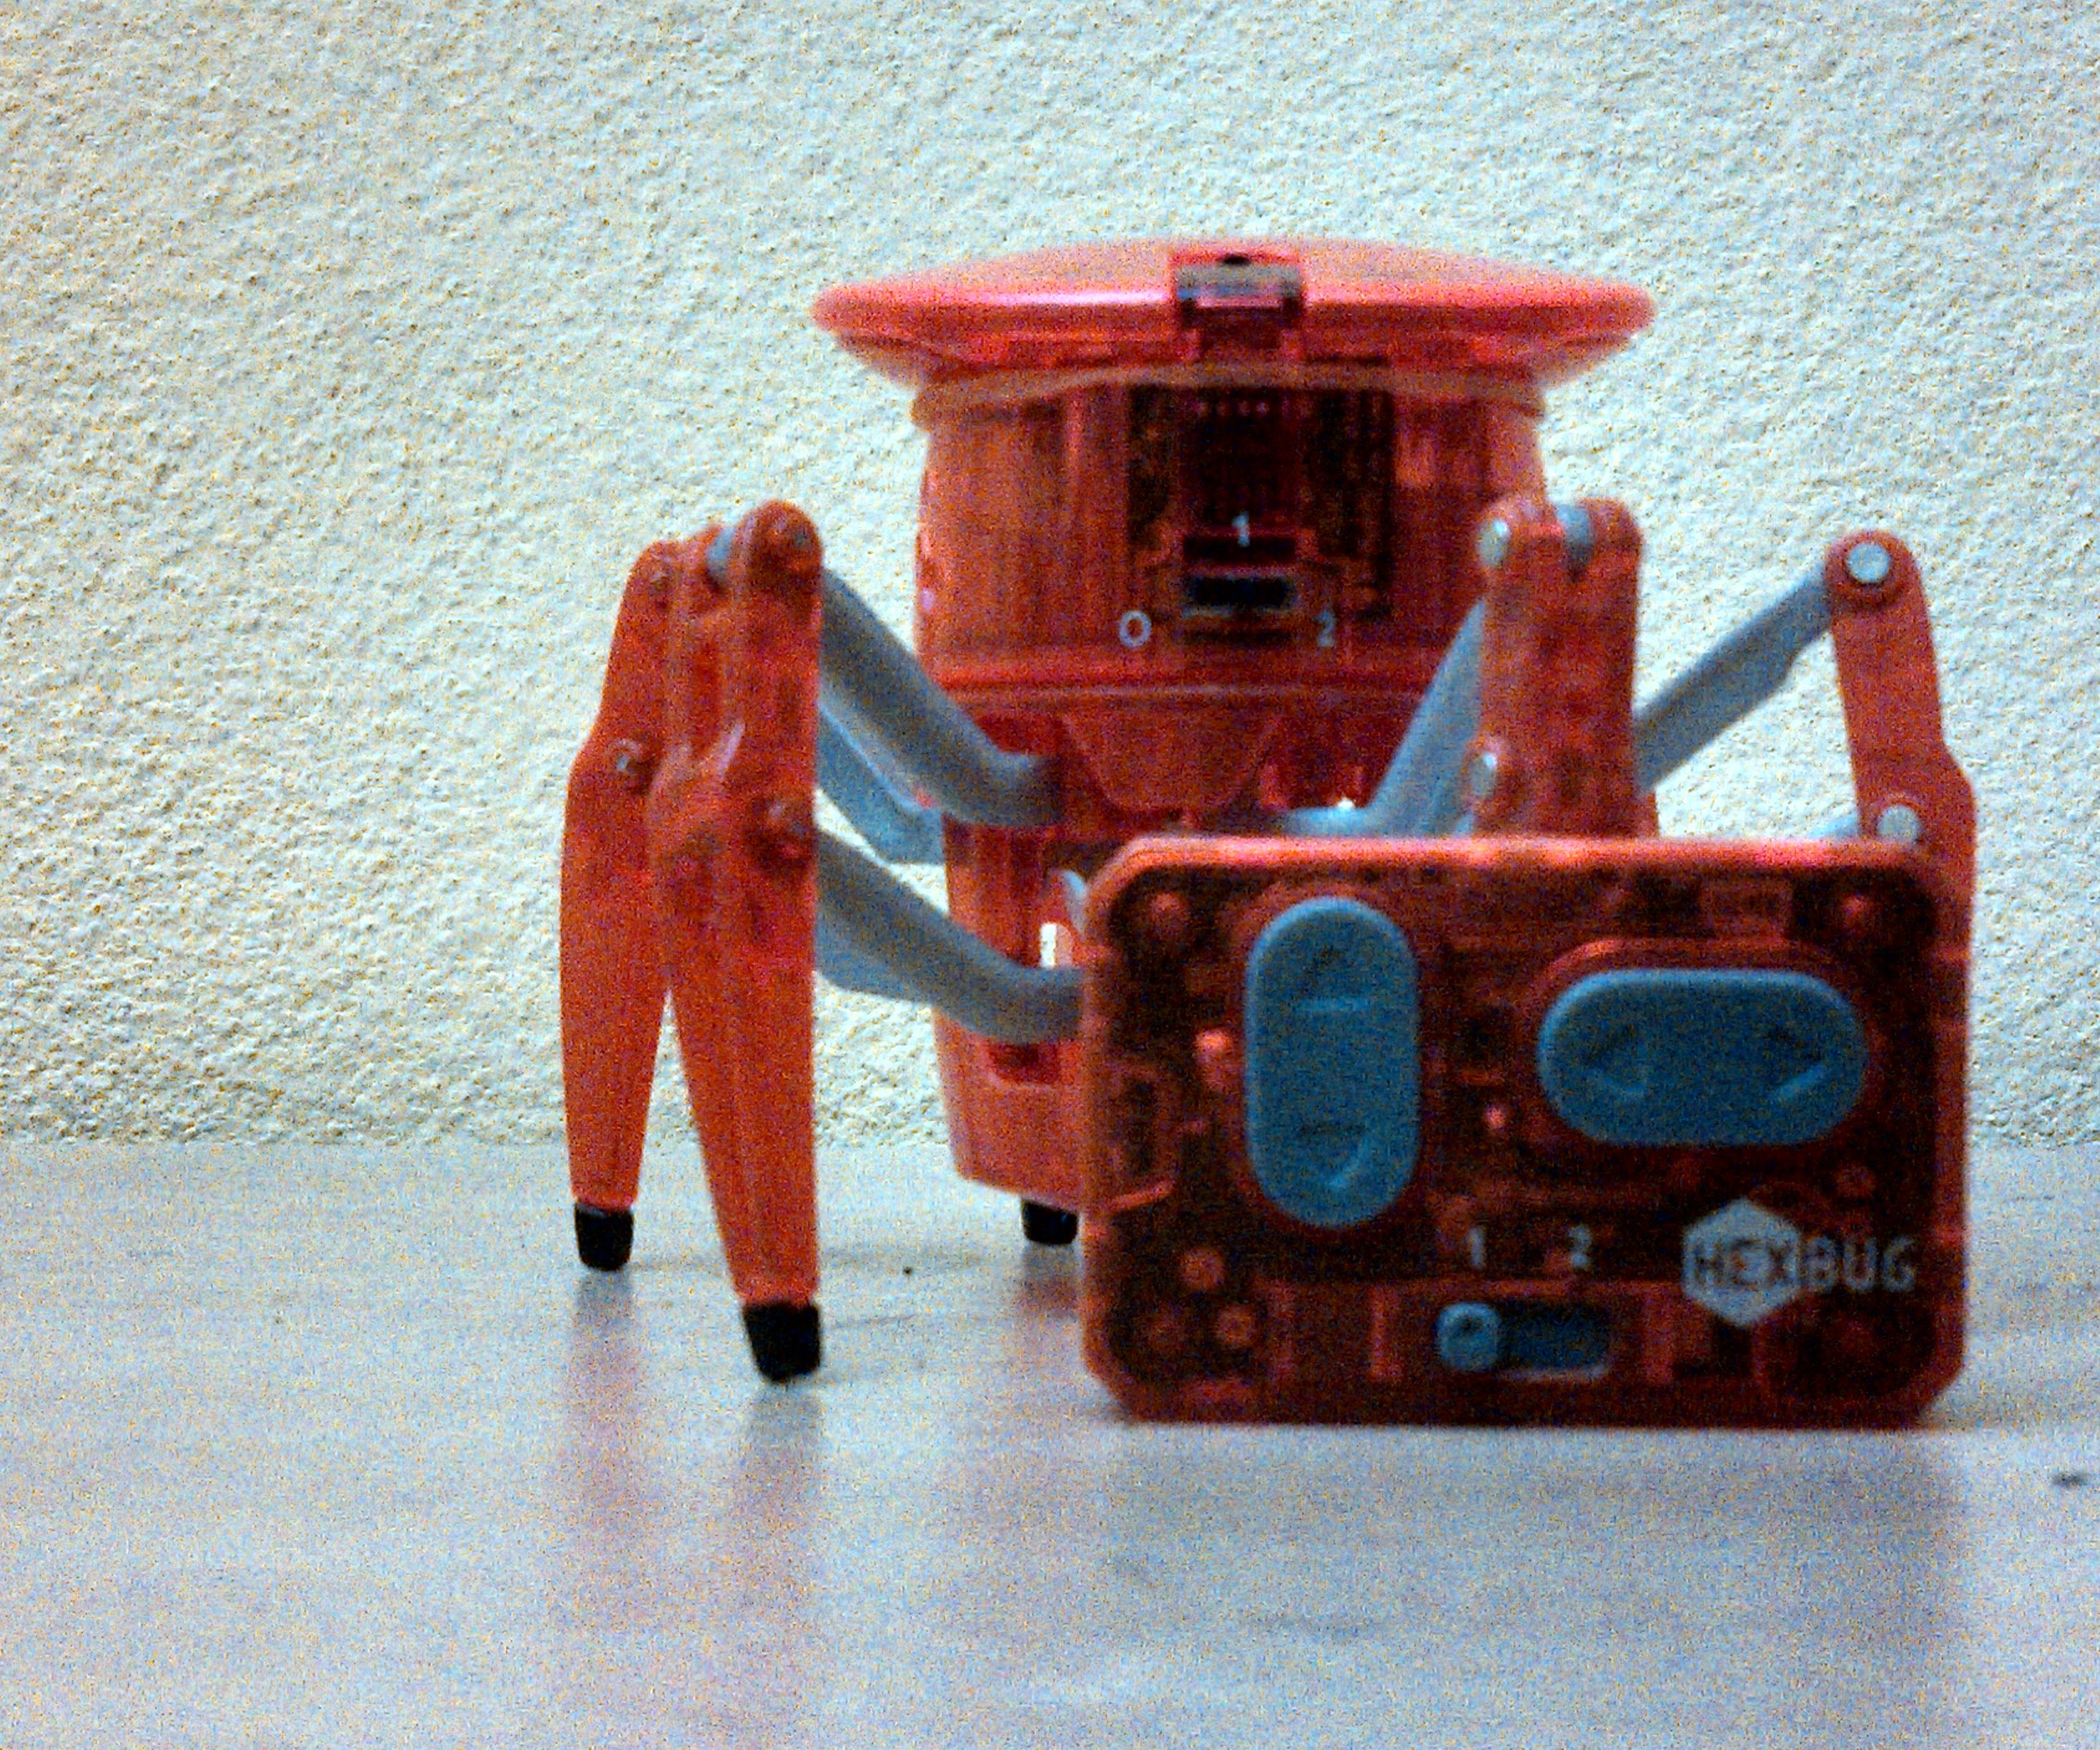 MODIFY YOUR HEXBUG SPIDER WITH WASTE MATERIAL.